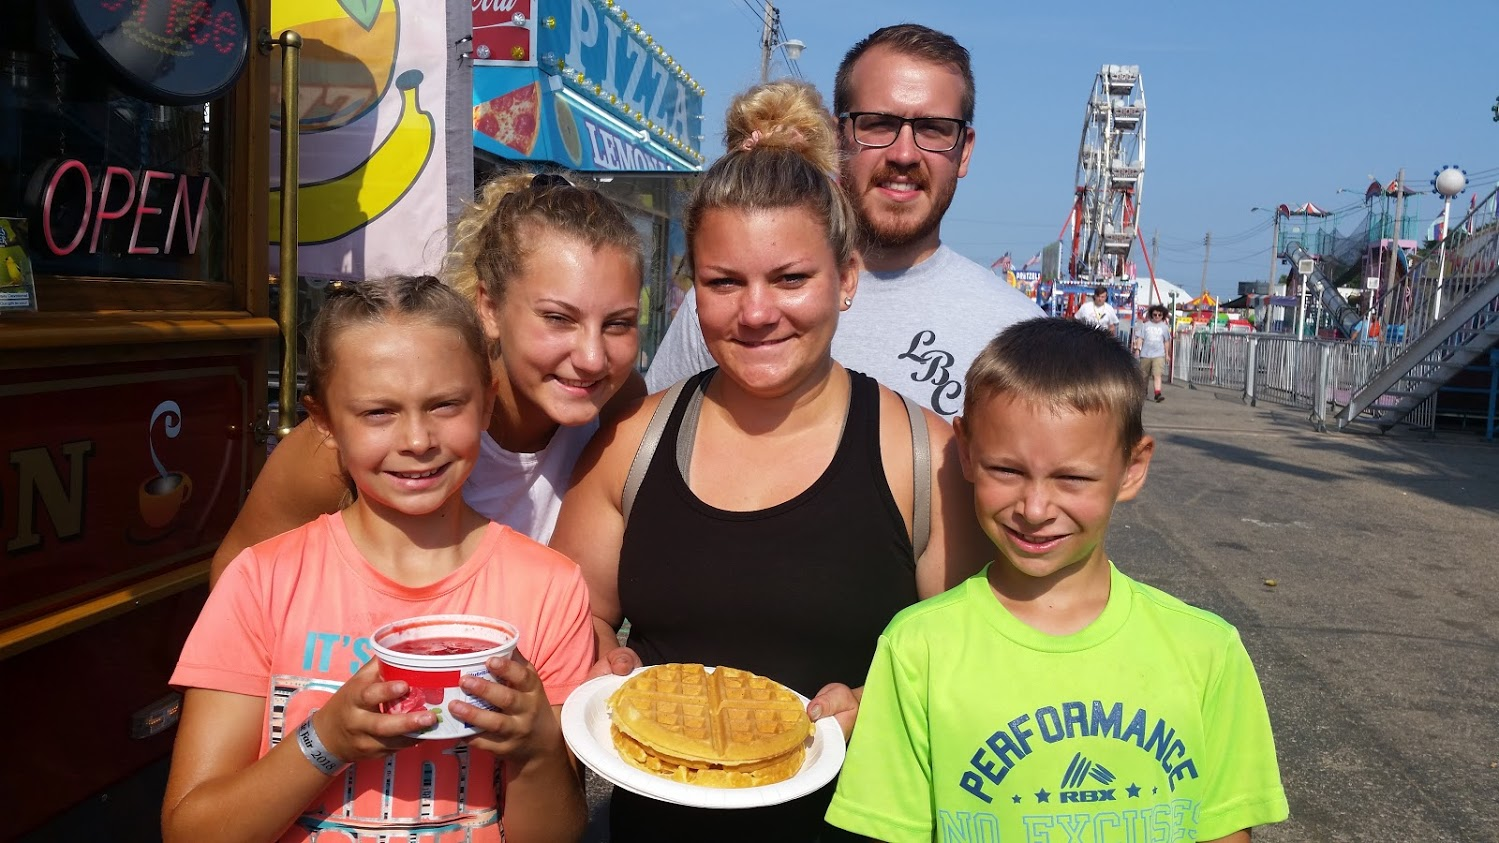 The UP State Fair…We love our customers! Especially when they treat us to Grandma's waffles!